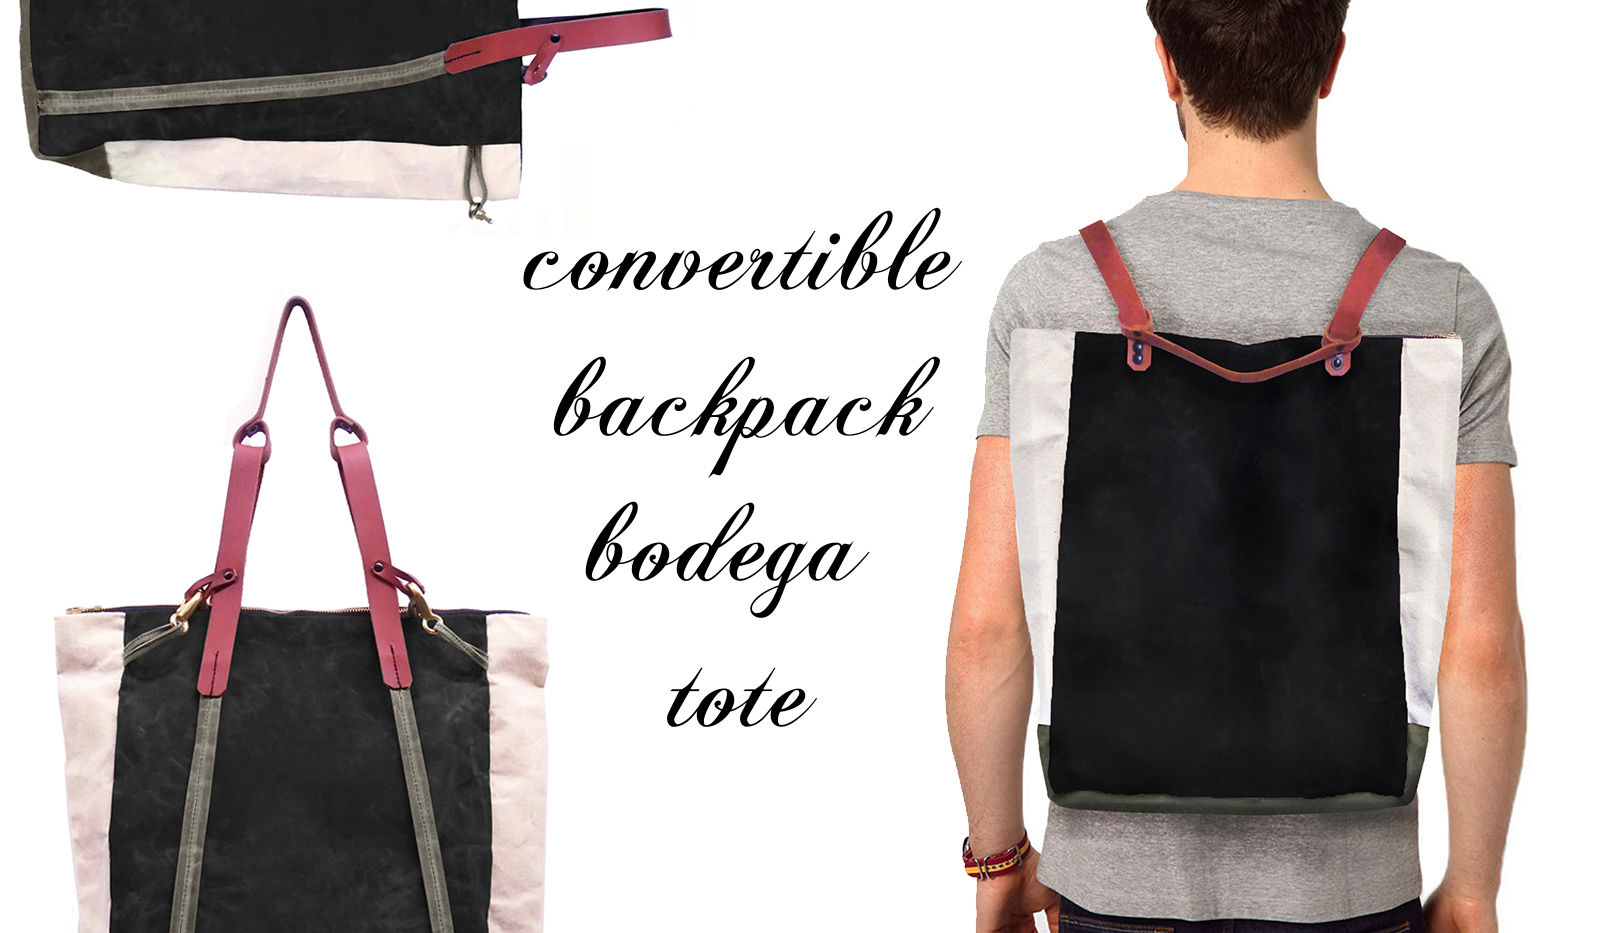 Convertible Bodega Tote Backpack